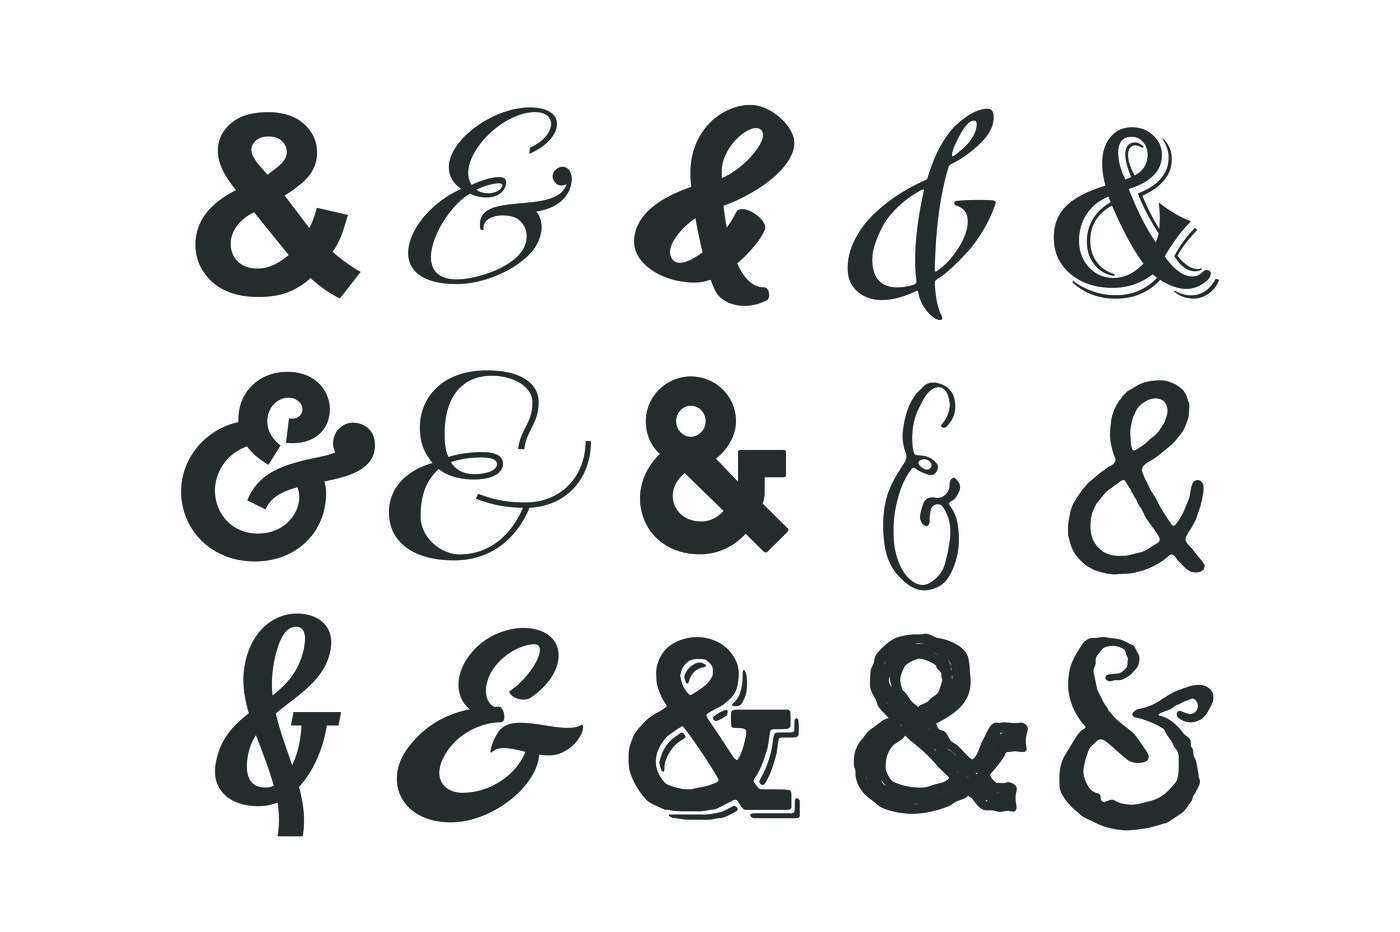 Ampersands For Crafters By Brandi Lea Designs Thehungryjpeg Com